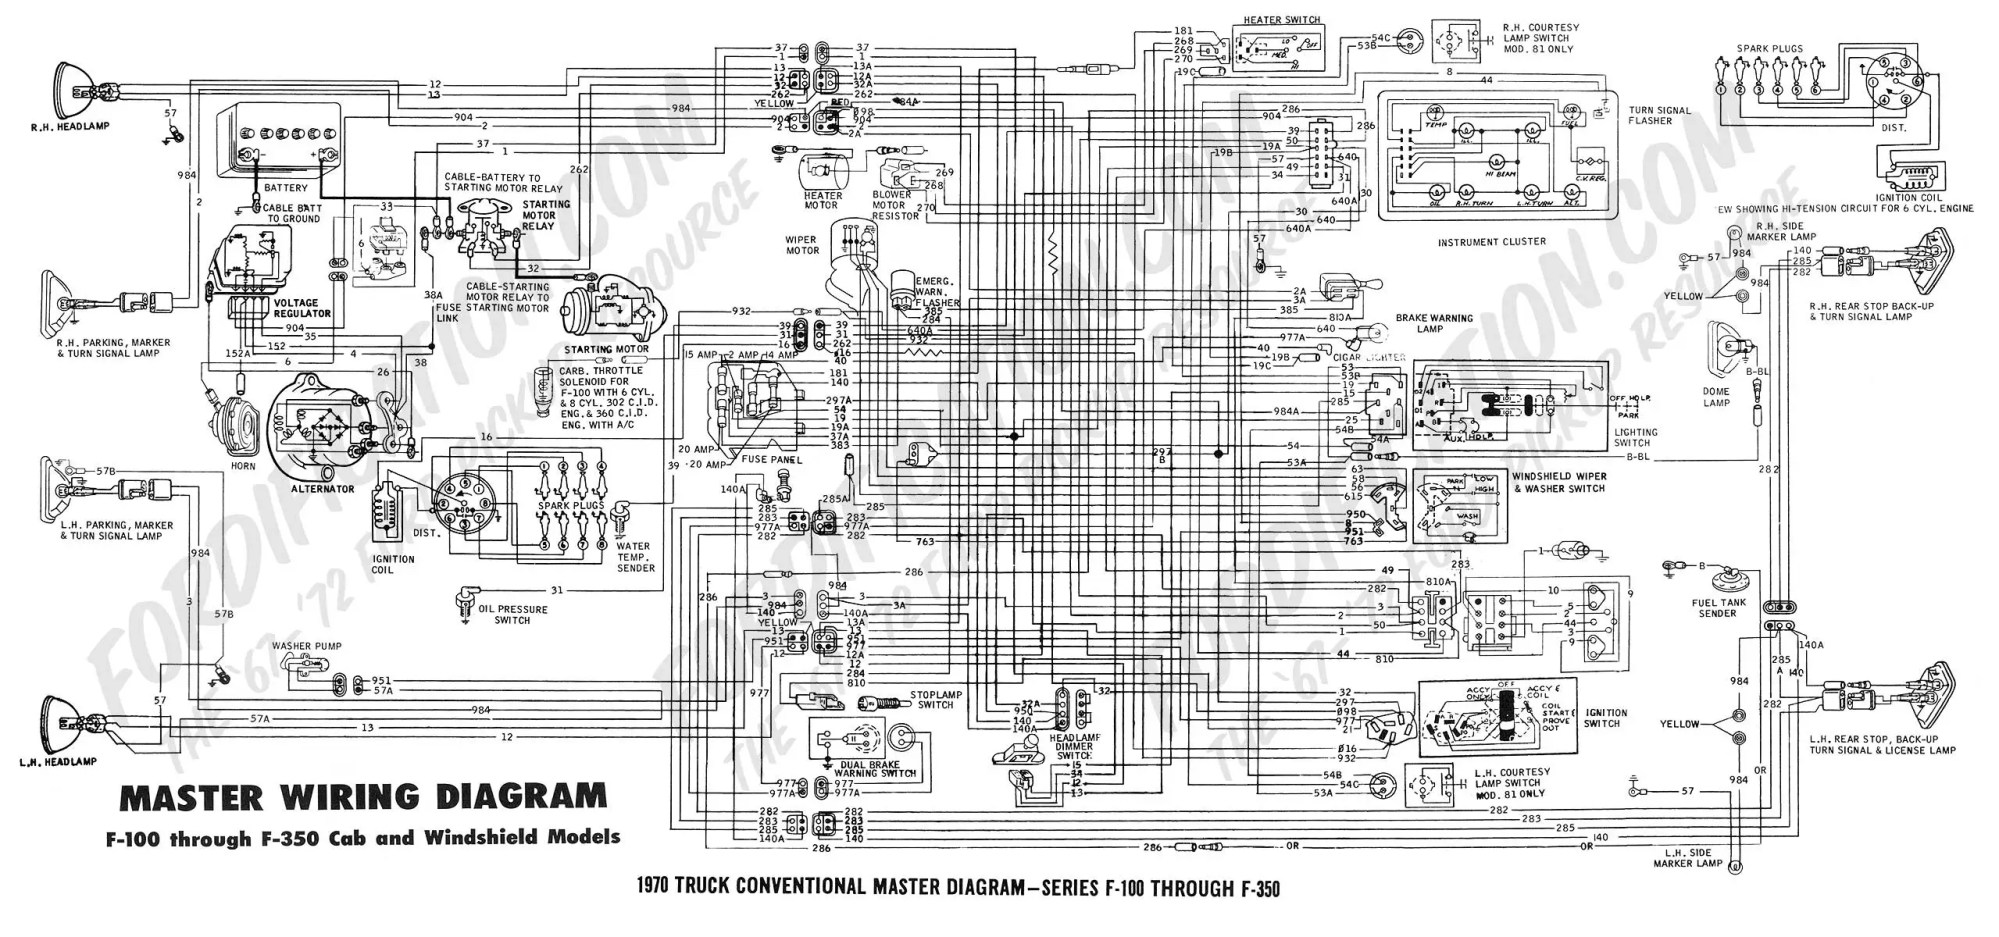 hight resolution of wiring diagram for 1983 ford f150 wiring diagram files 1983 ford f150 starter solenoid wiring diagram 1983 ford f150 wiring diagram